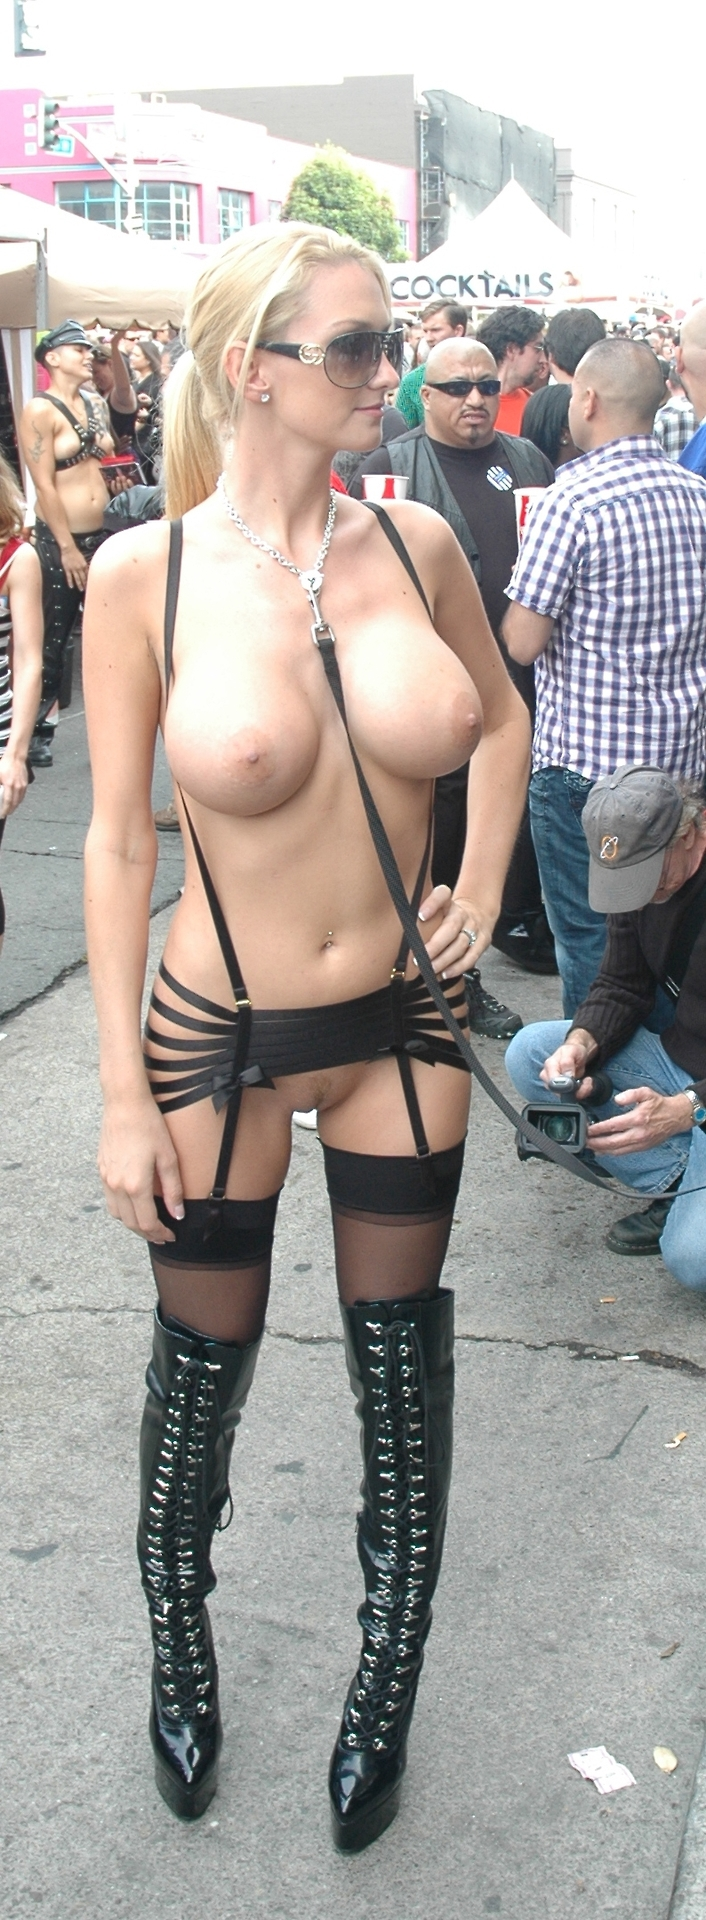 dominicana sosua free videos watch download and enjoy Ll Be The Entertainment Bondage Bdsm Outdoors Exhibitionist Voyeur Humiliated Submissive Nude Used Tits